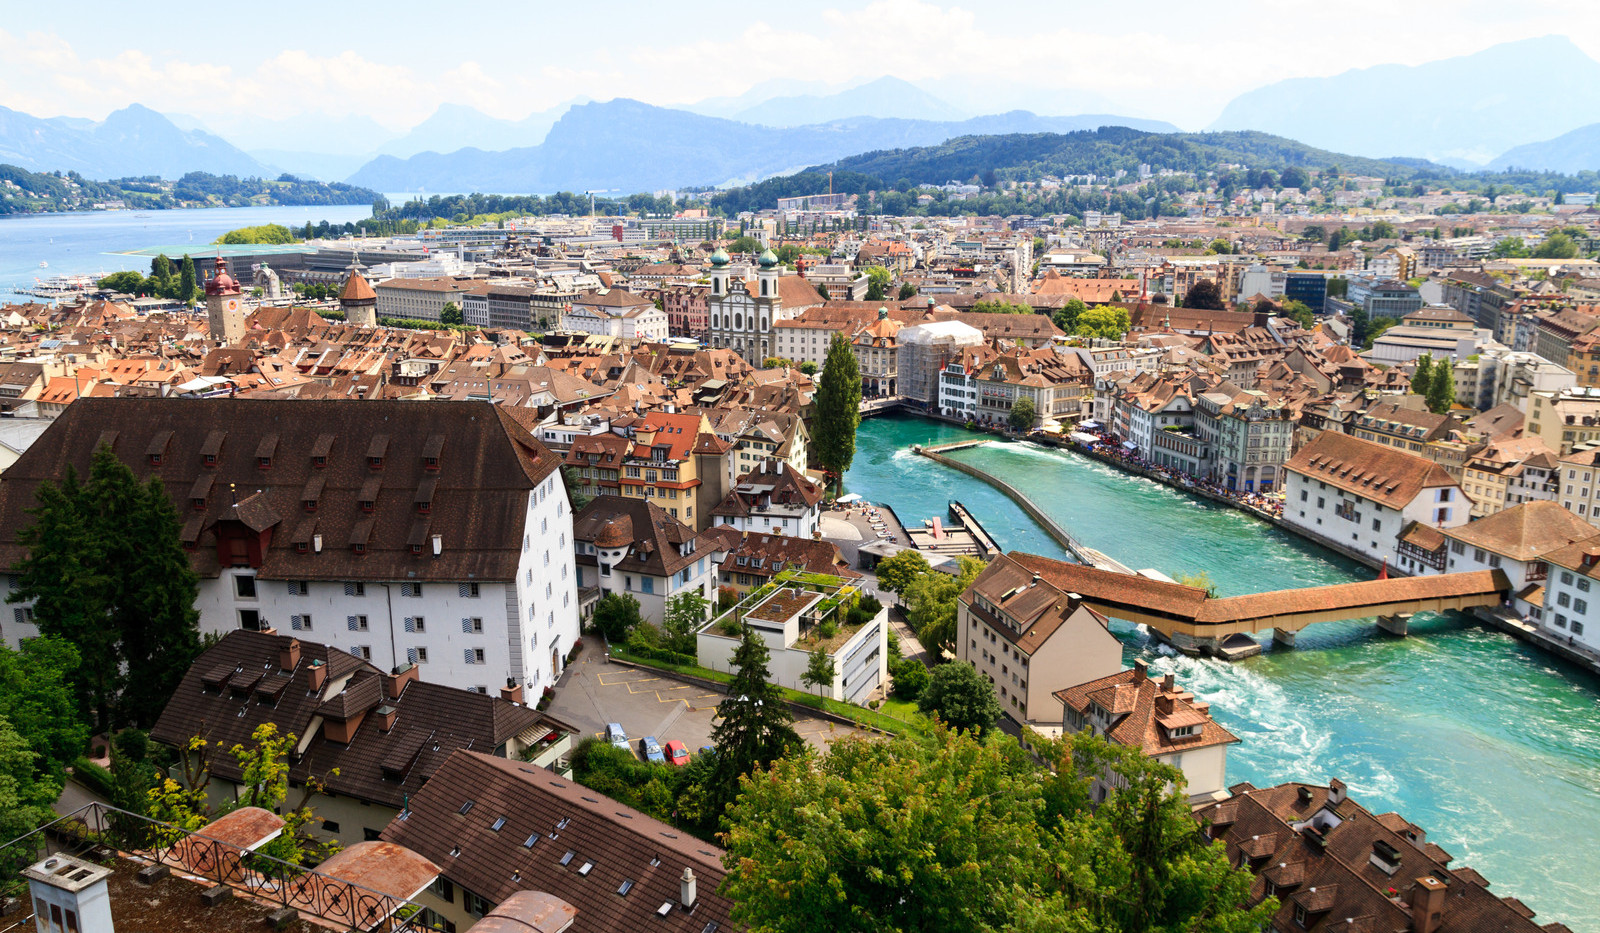 Canva - Luzern City View.jpg